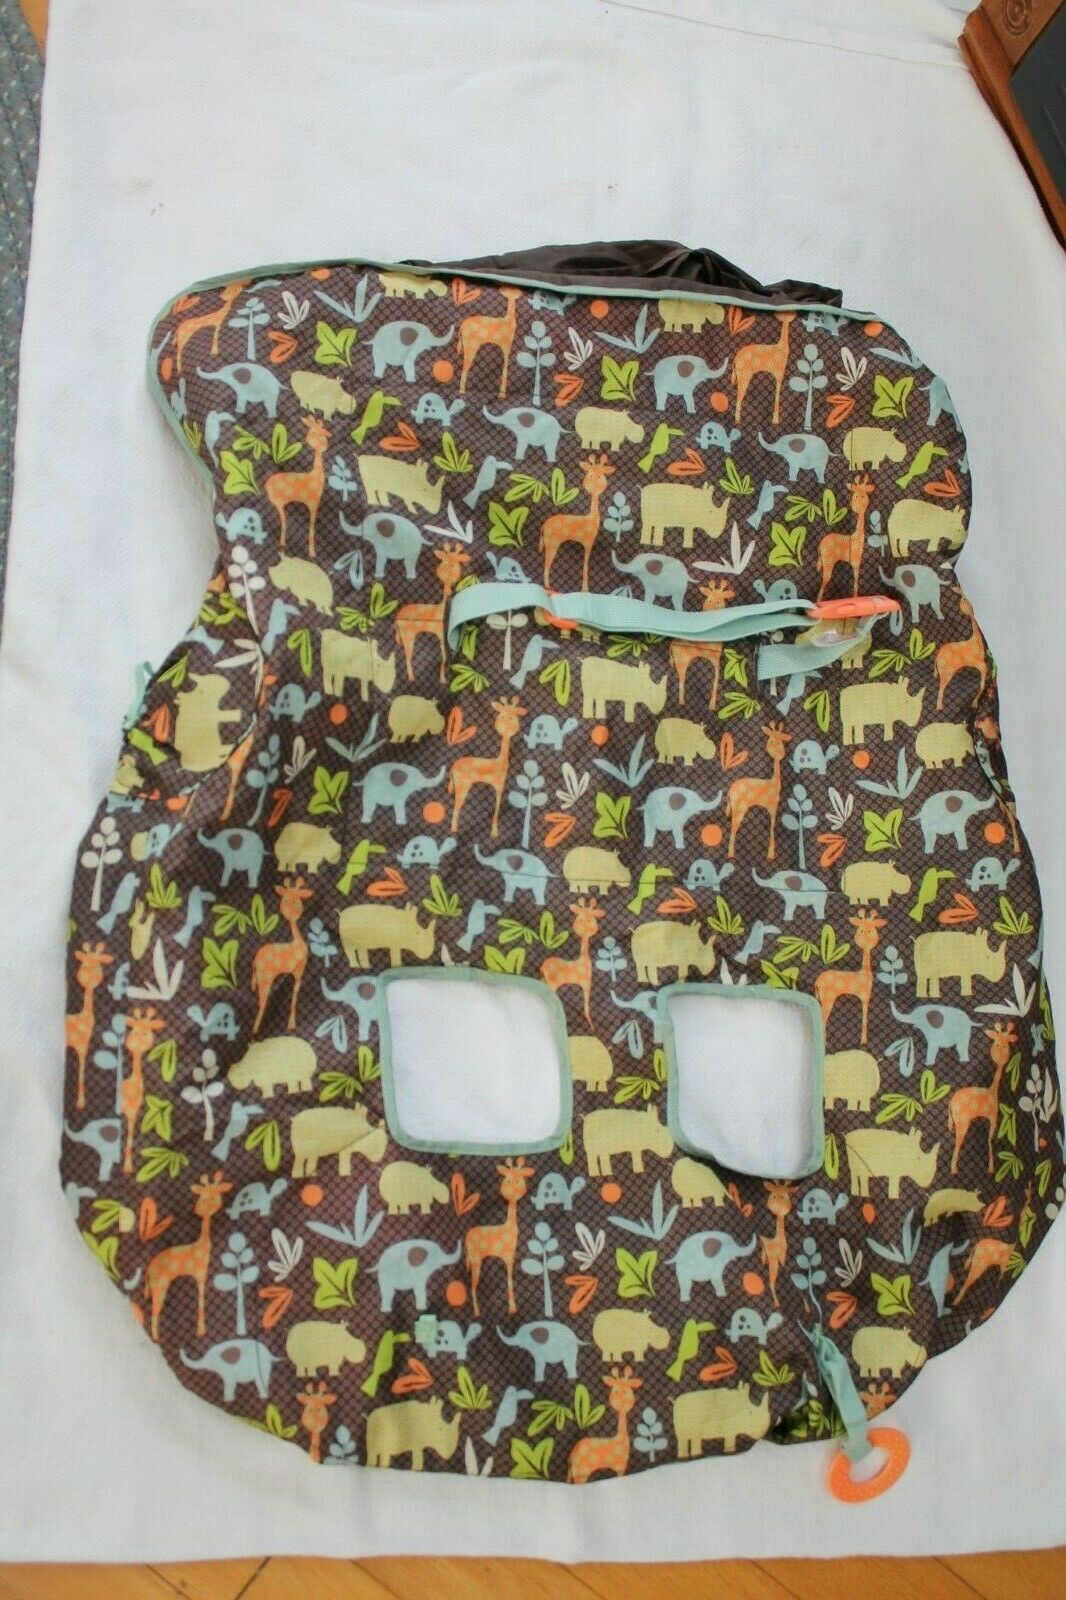 Primary image for Infantino Compact 2-in-1 Shopping Cart Cover, Neutral, Safari Print